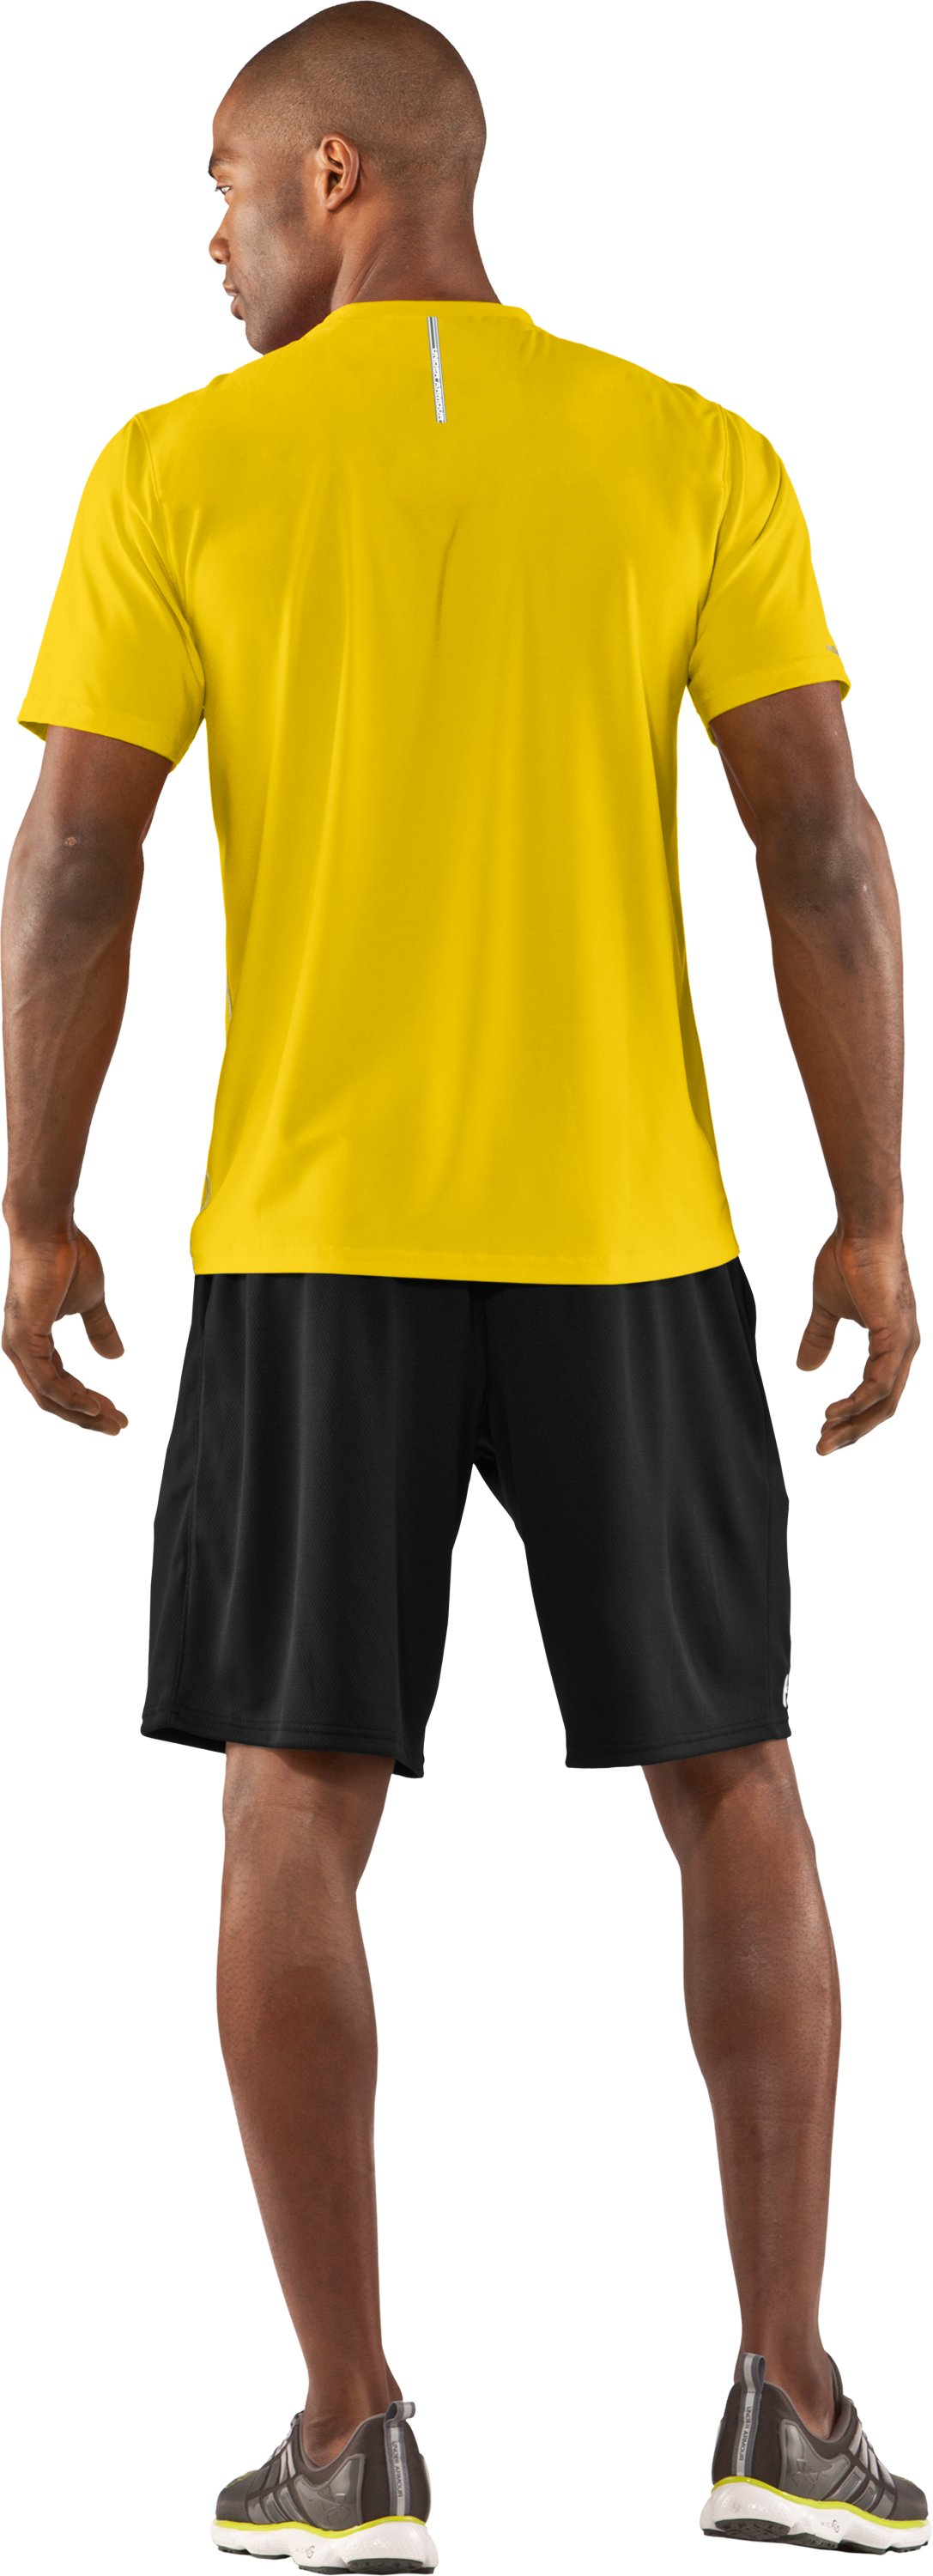 Men's coldblack® Short Sleeve T-Shirt, Taxi, Back